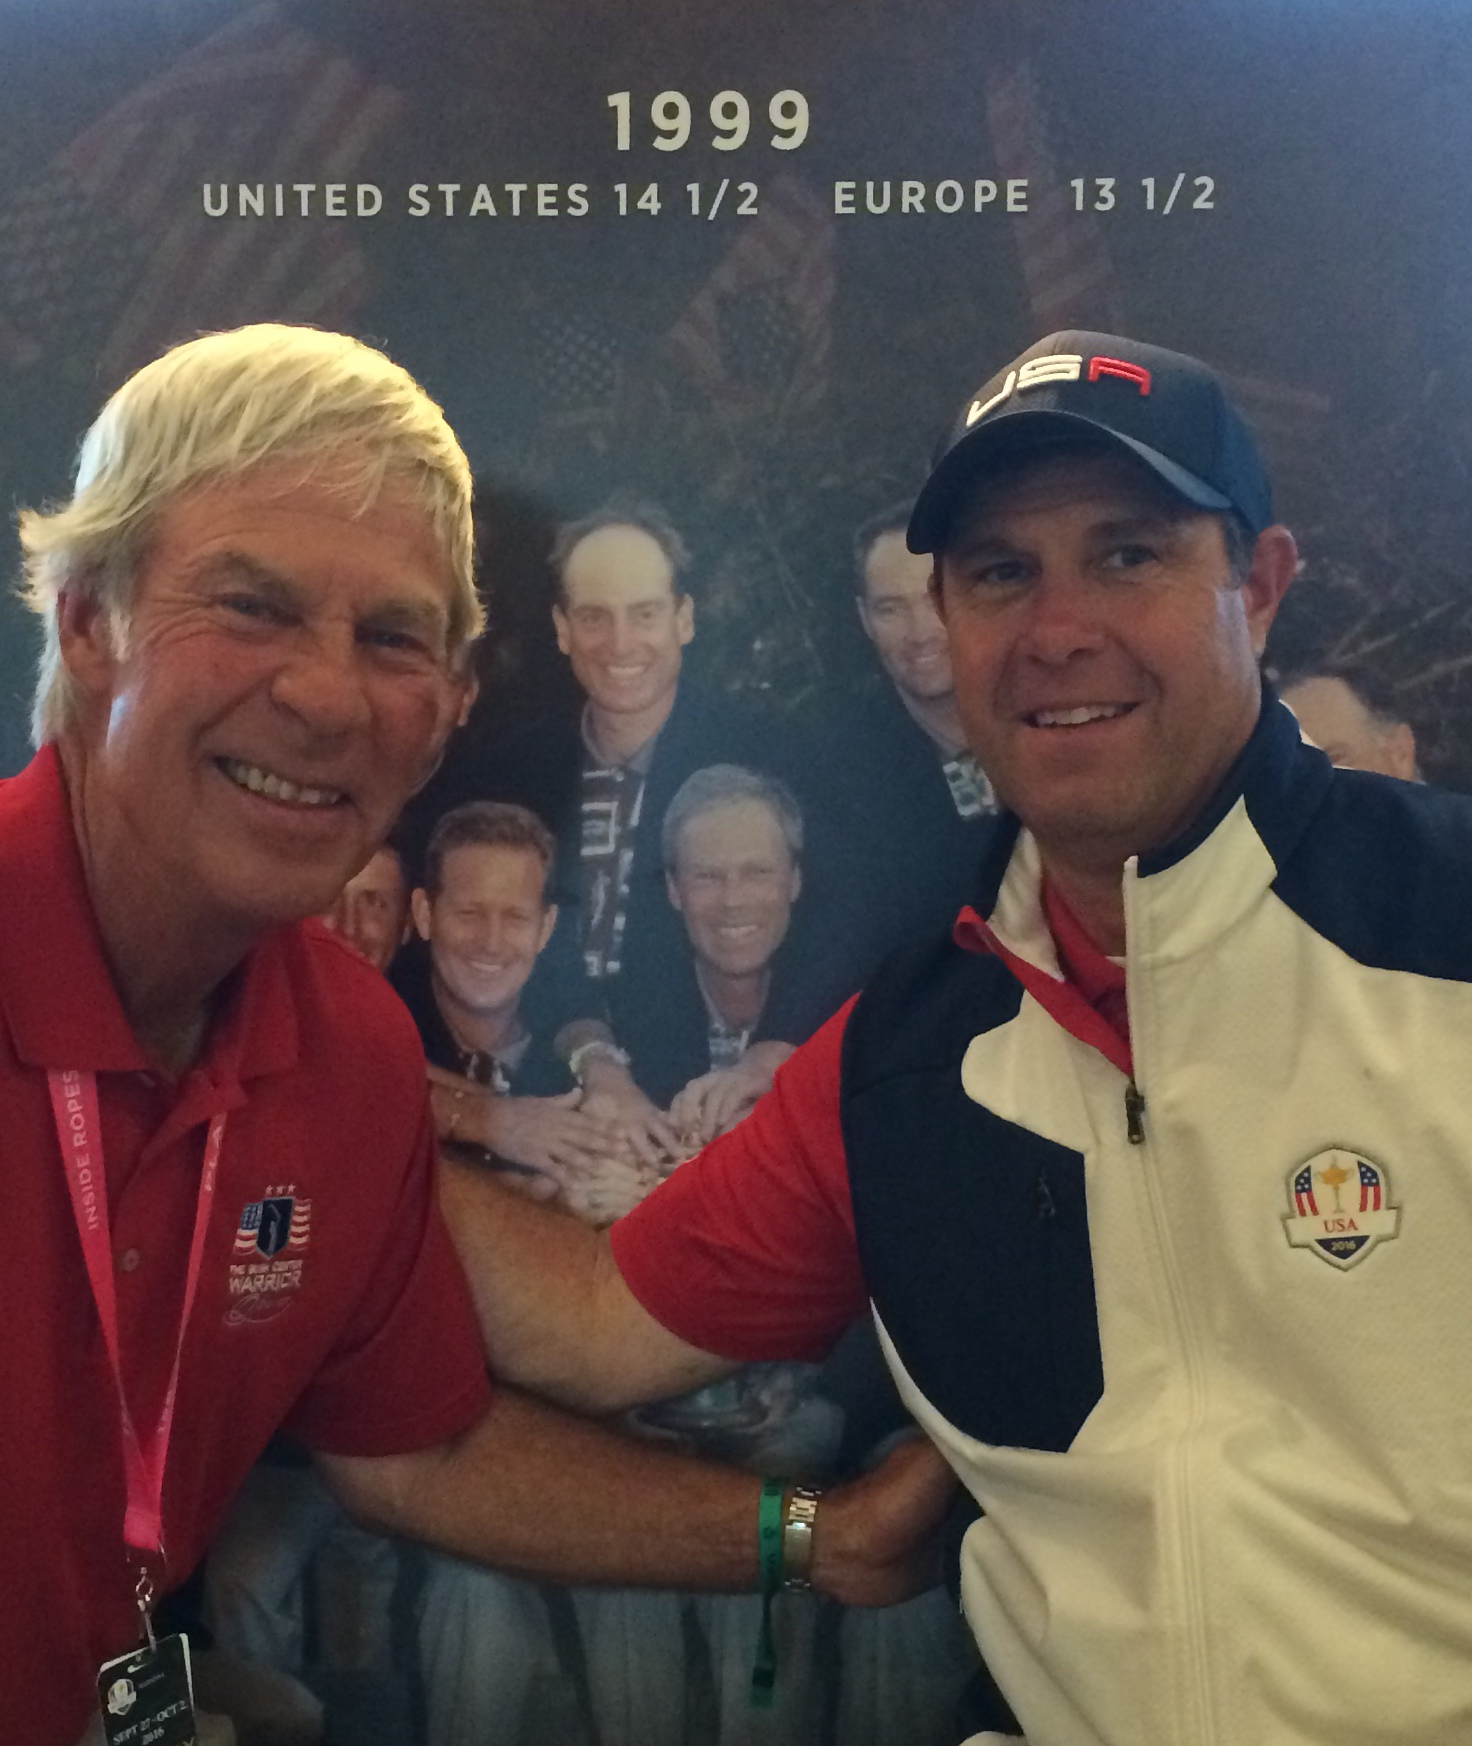 Randy Myers Golf Fitness - Ryder Cup